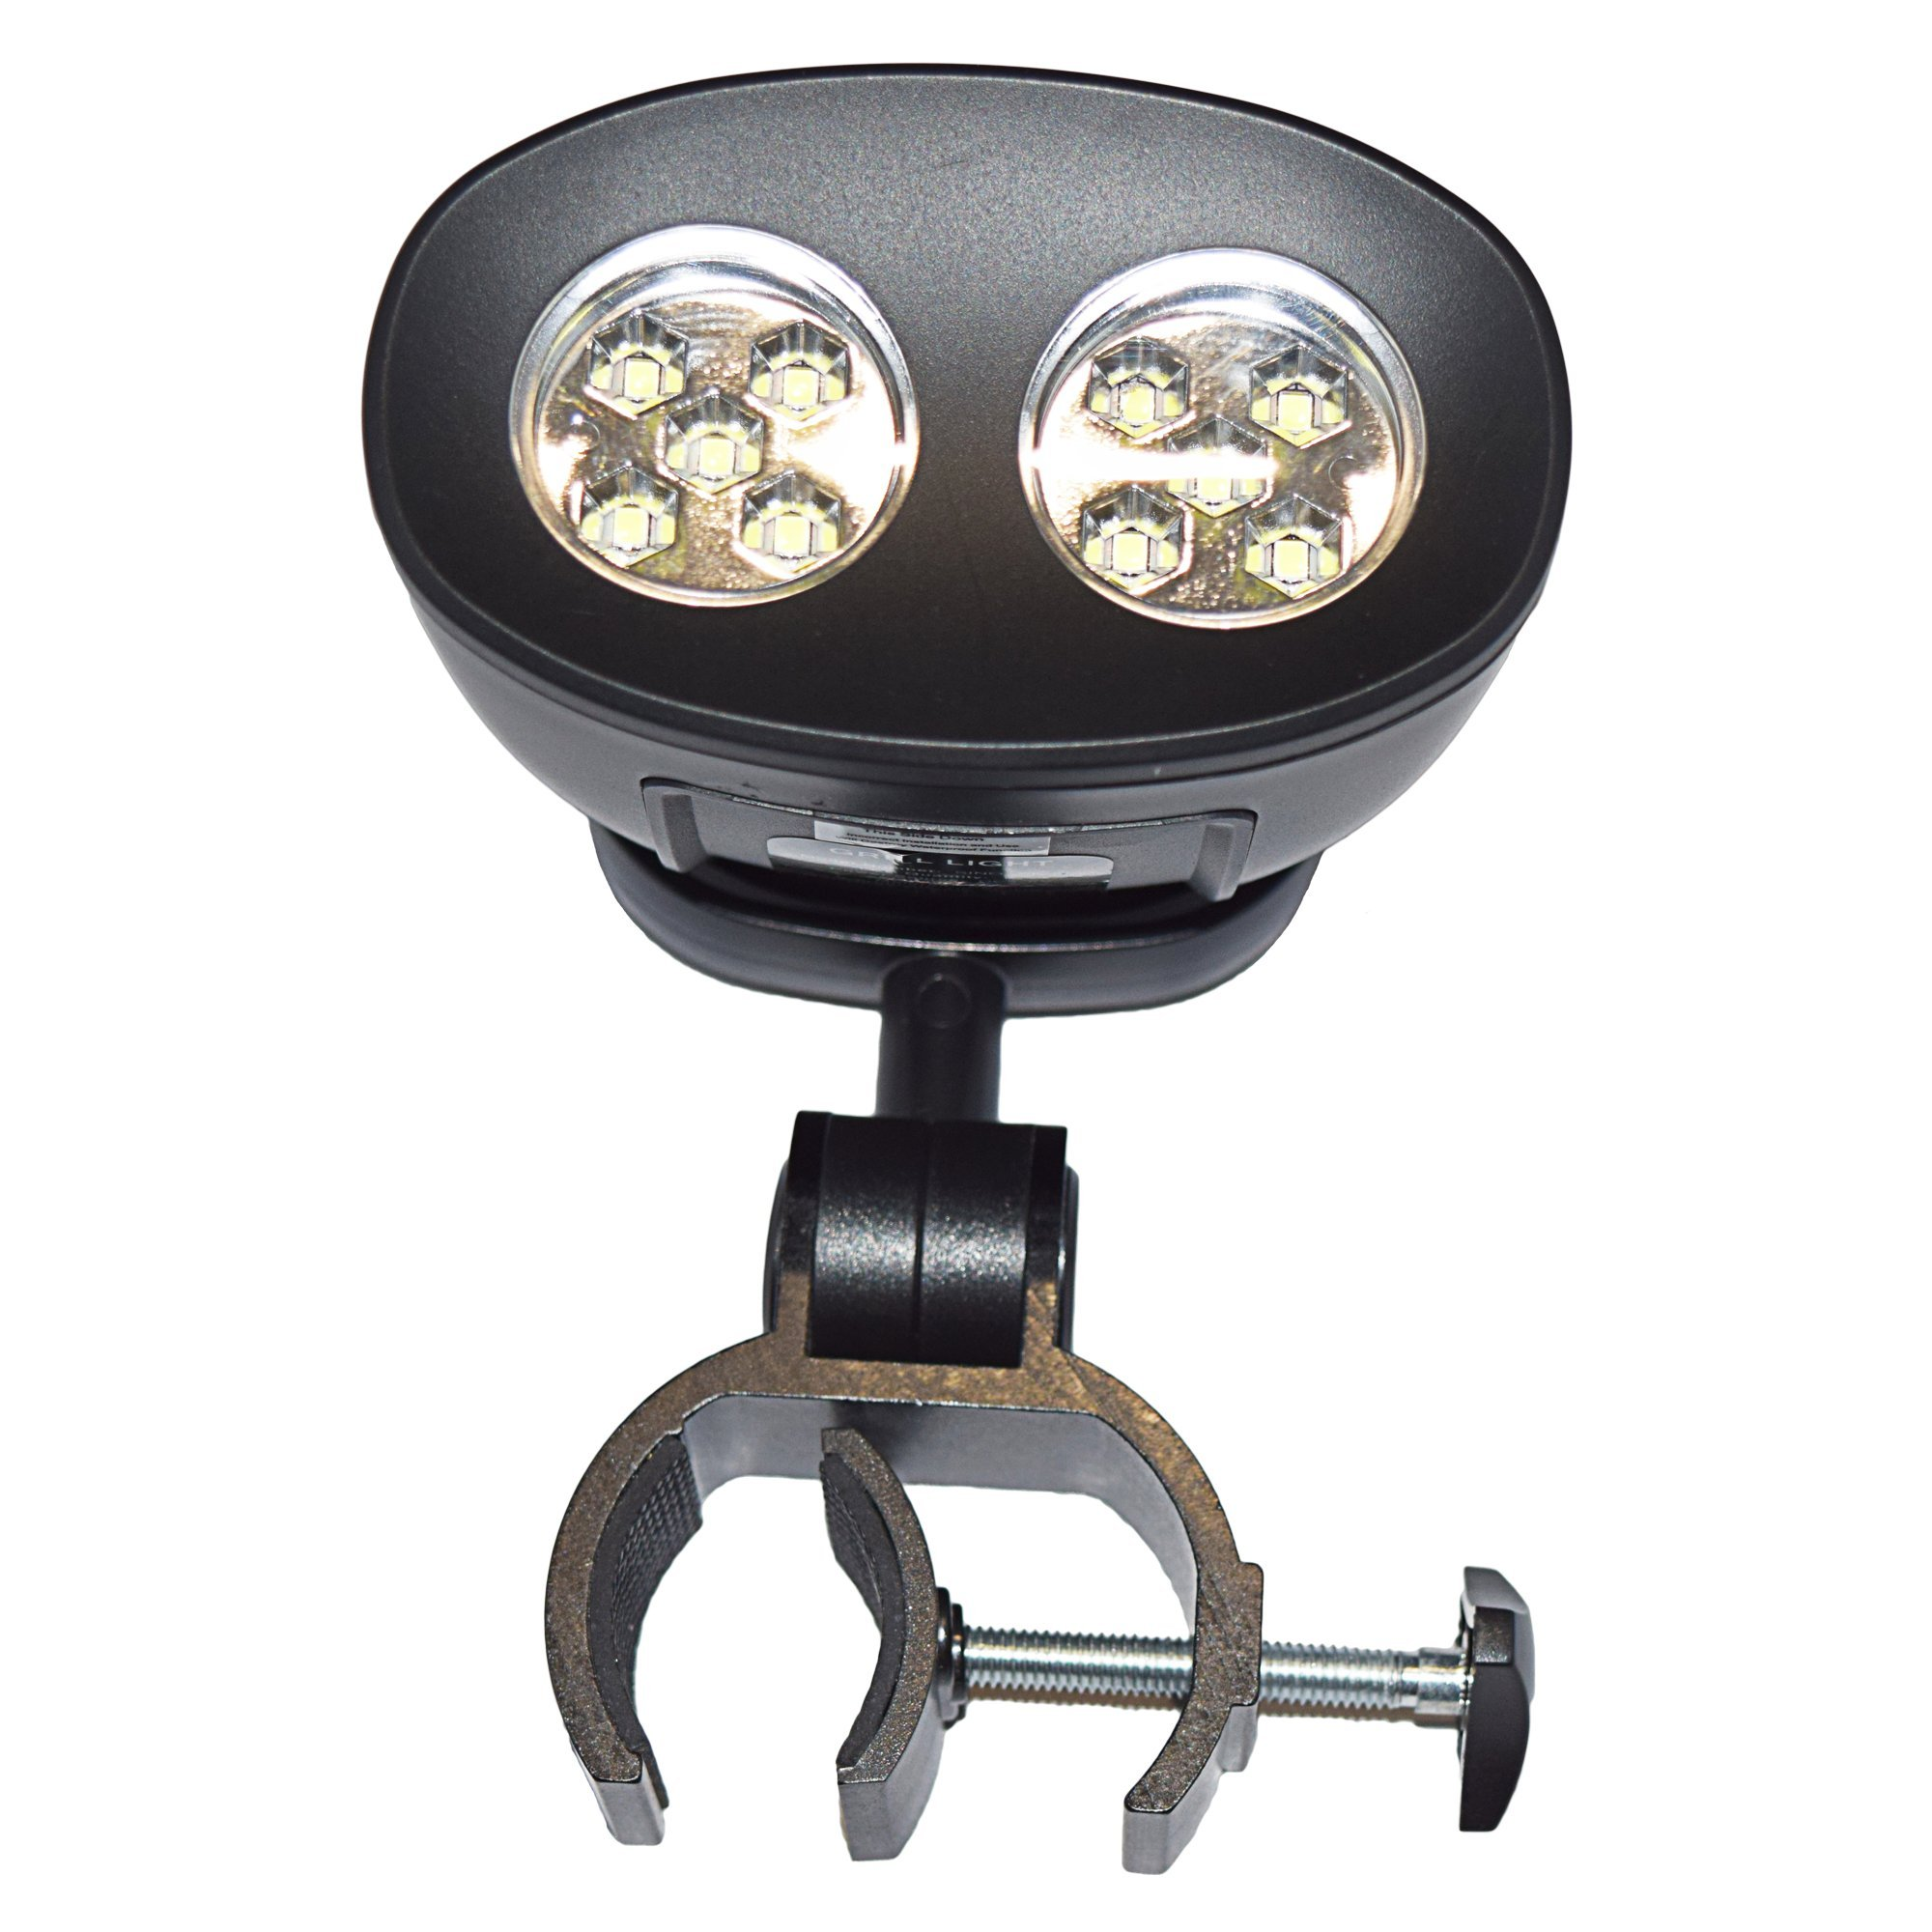 Barbecue Grill Light is Handle Mount, Waterproof Extreme Beam of Light - Led Tool for the Outdoor, Gas, Charcoal, Electric BBQ, Smoker, Brookstone, Green Egg, Kenmore, Kamado, Traeger & Weber